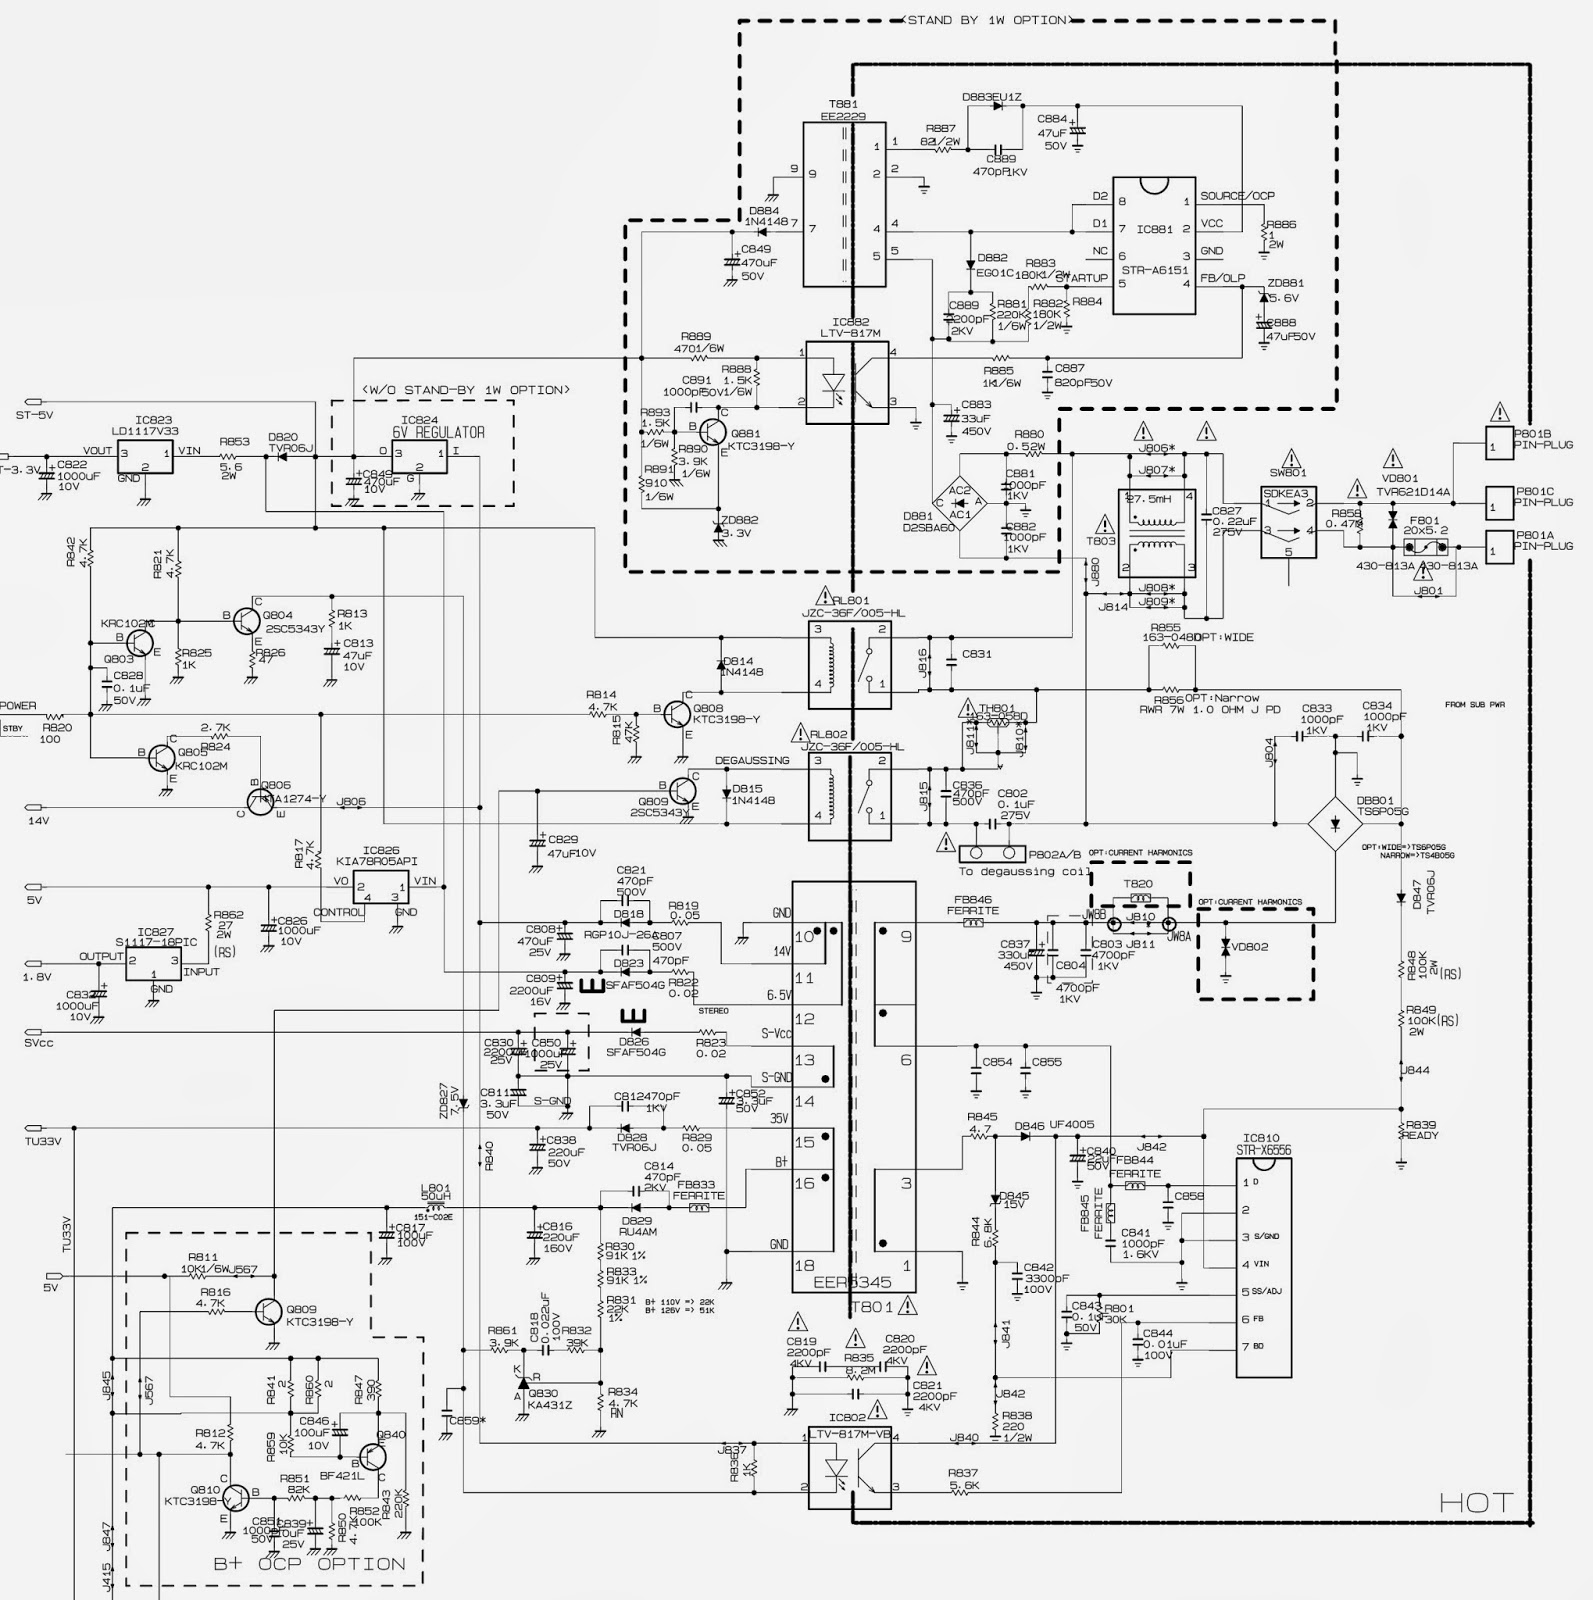 STR X-6556 - BASED SMPS SCHEMATIC (Circuit Diagram) | Electro help